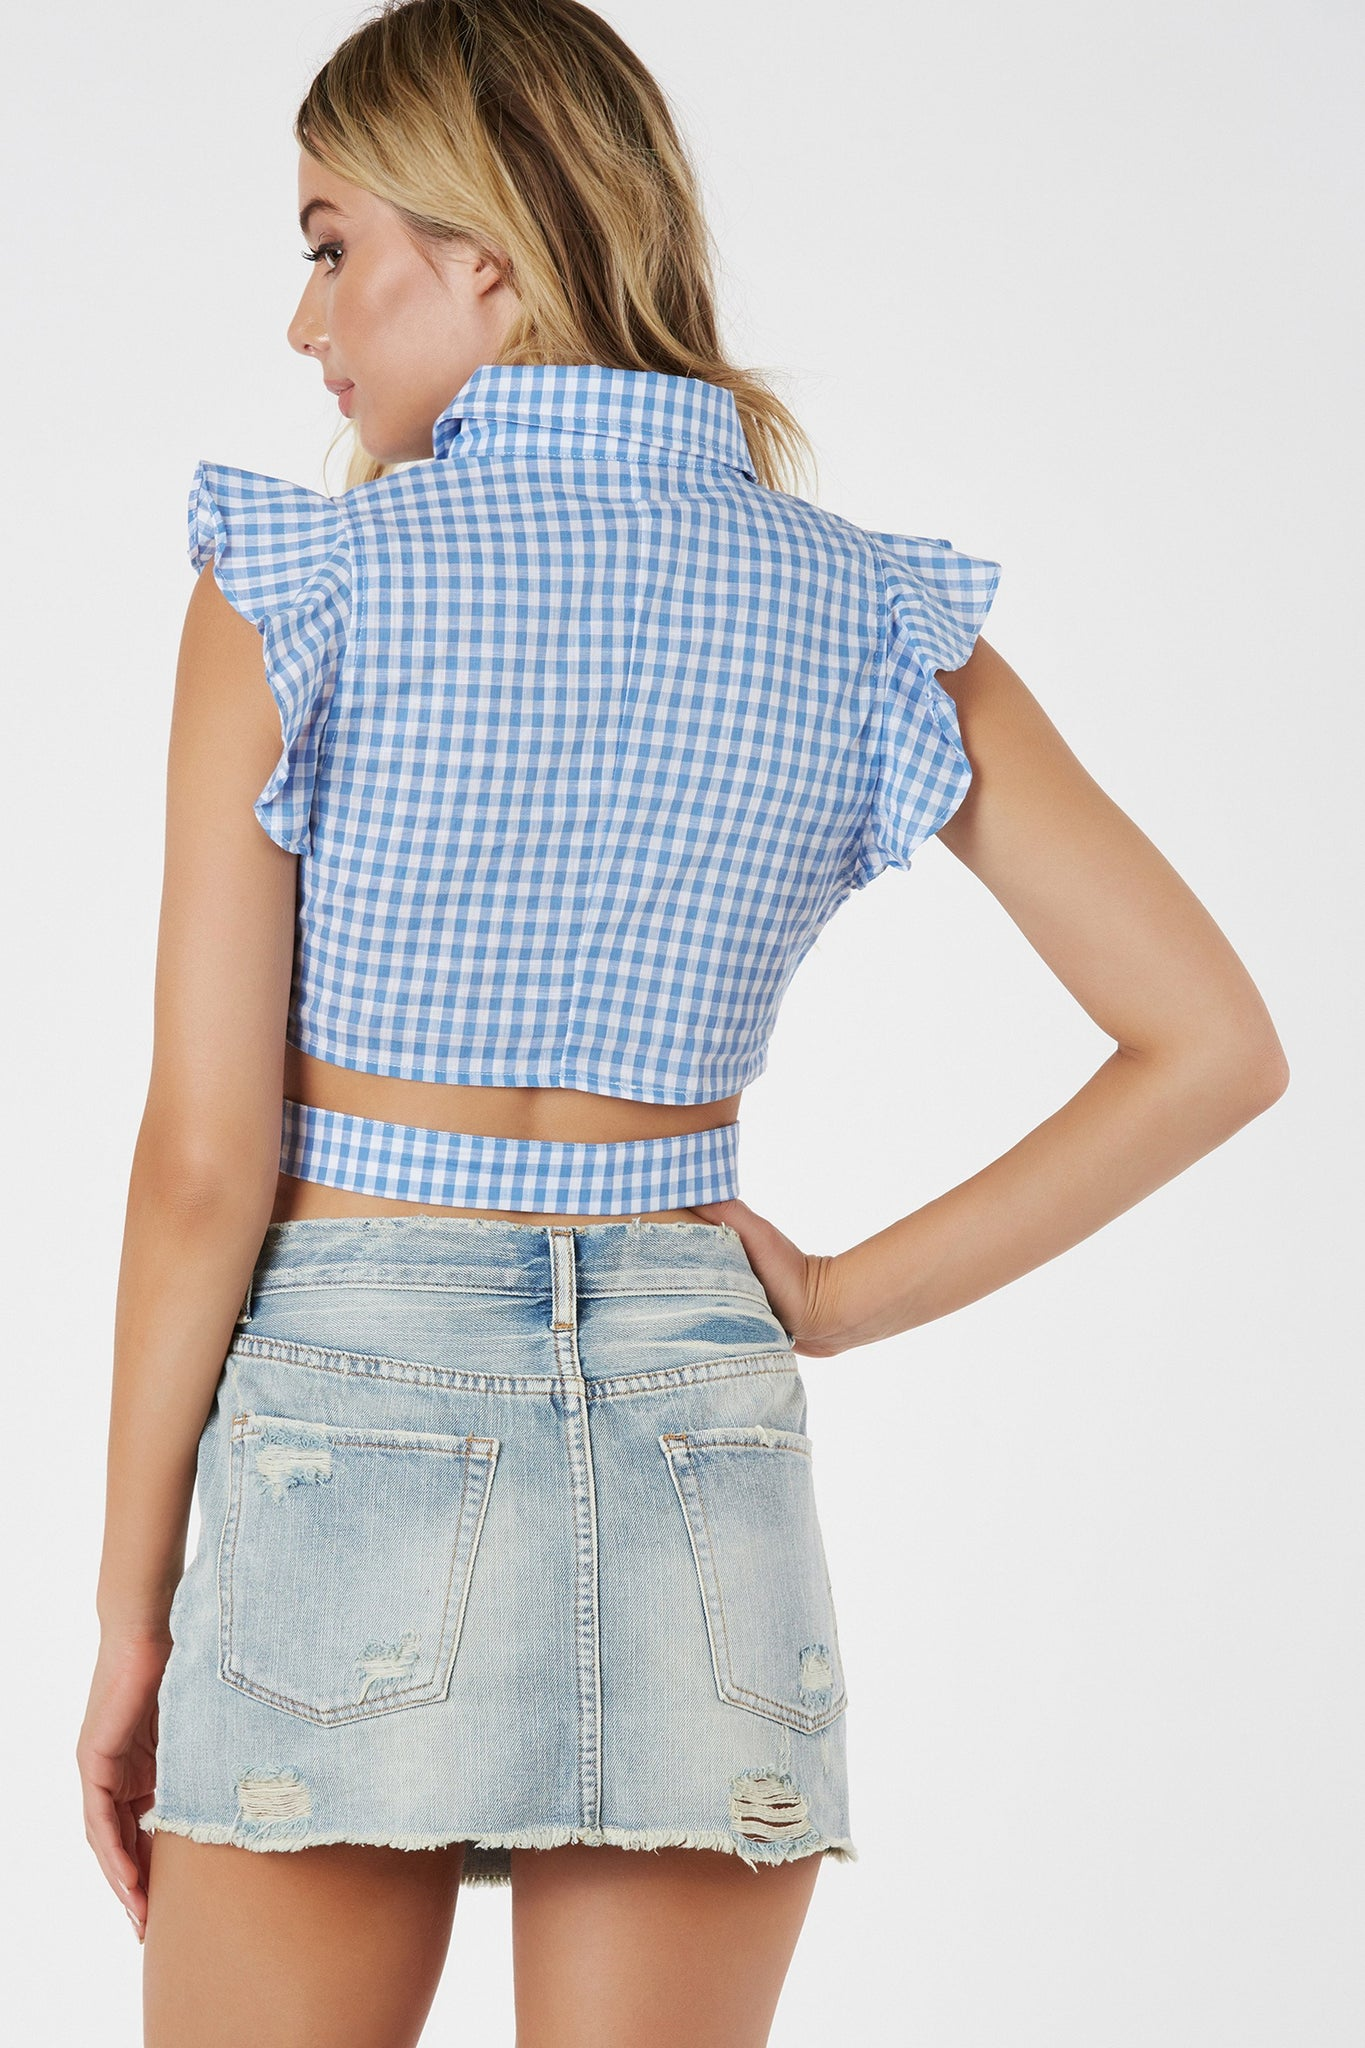 Flirty collared button down top with ruffle trim detailing. Checkered print with V-shape cut out and cropped hem finish.